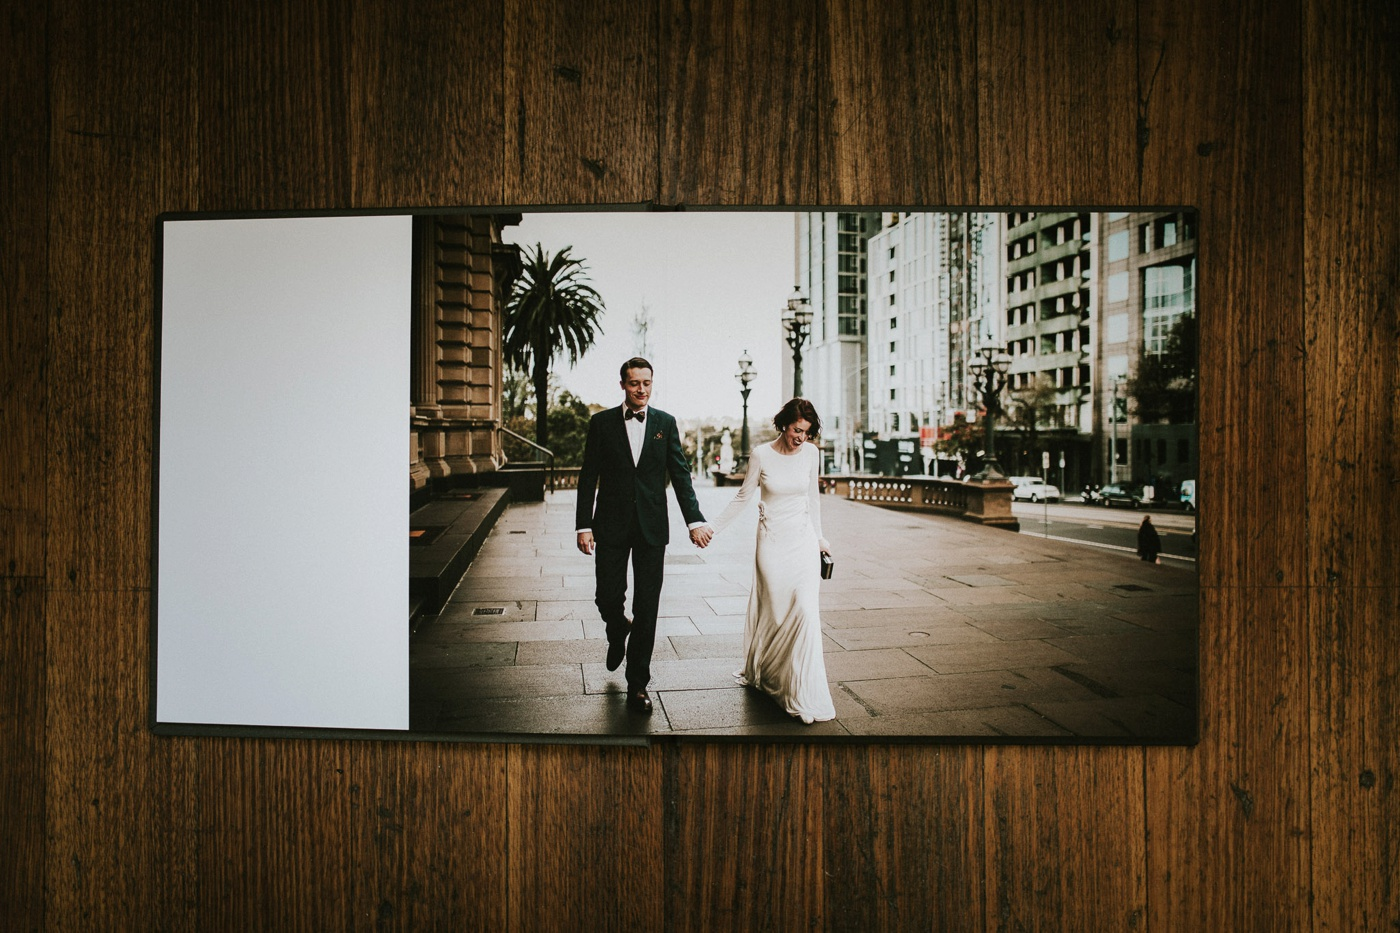 emmamorgan_melbourne-city-elopement_fine-art-wedding-album_melbourne-relaxed-candid-wedding-photography_2